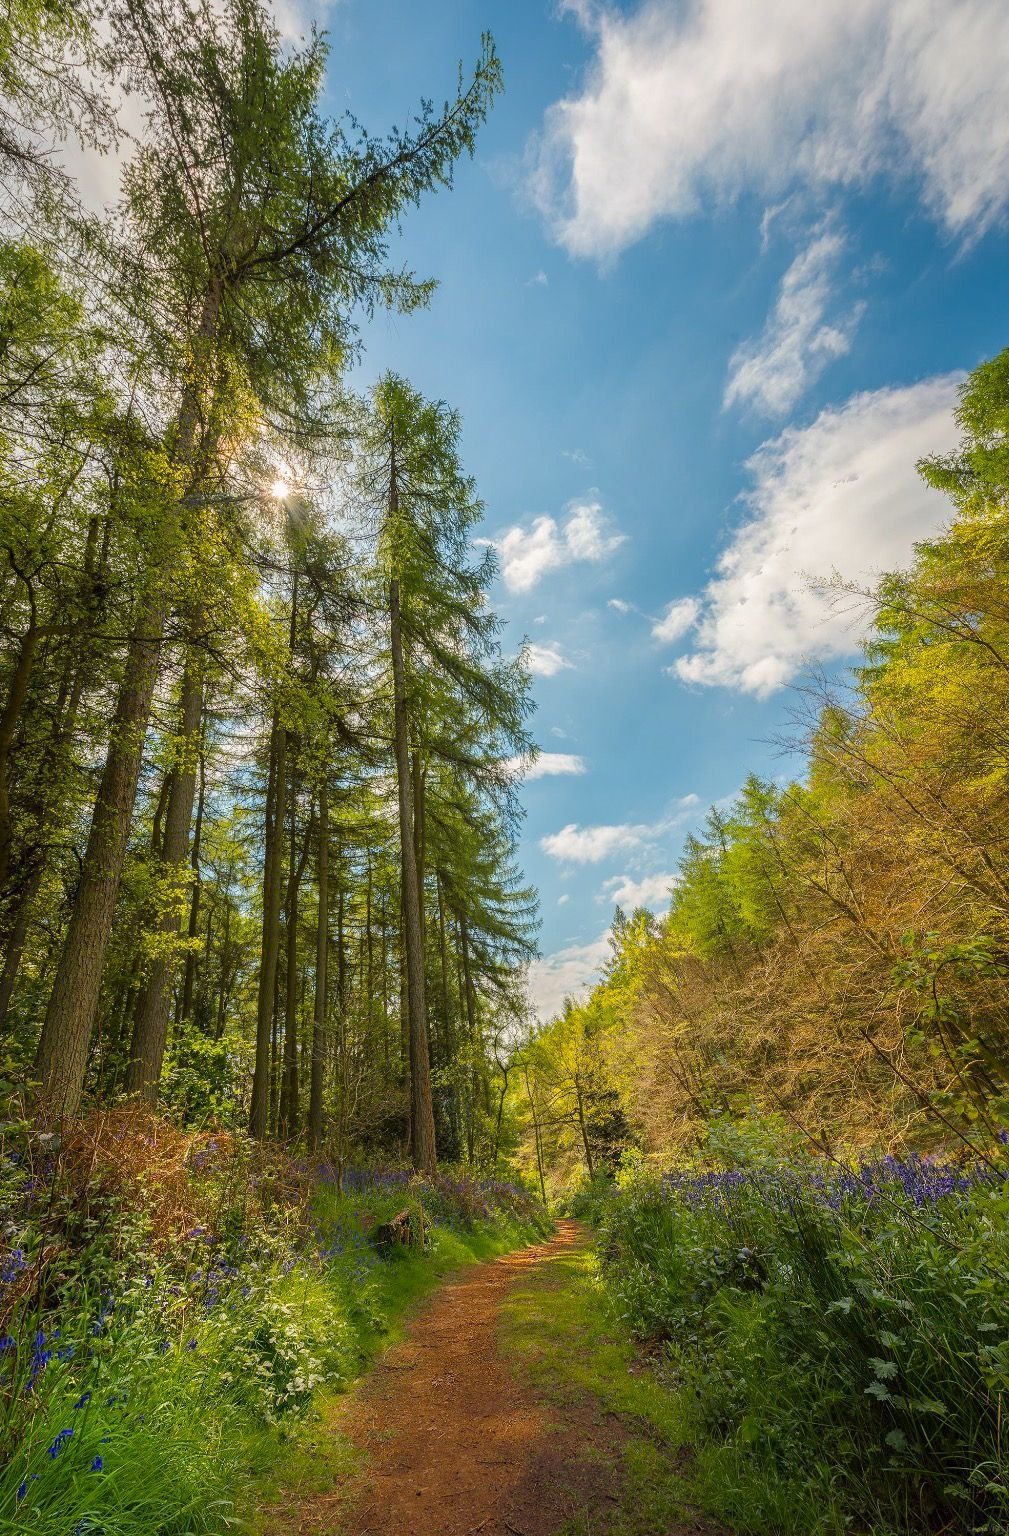 A path in the bluebell woods clent hills england by